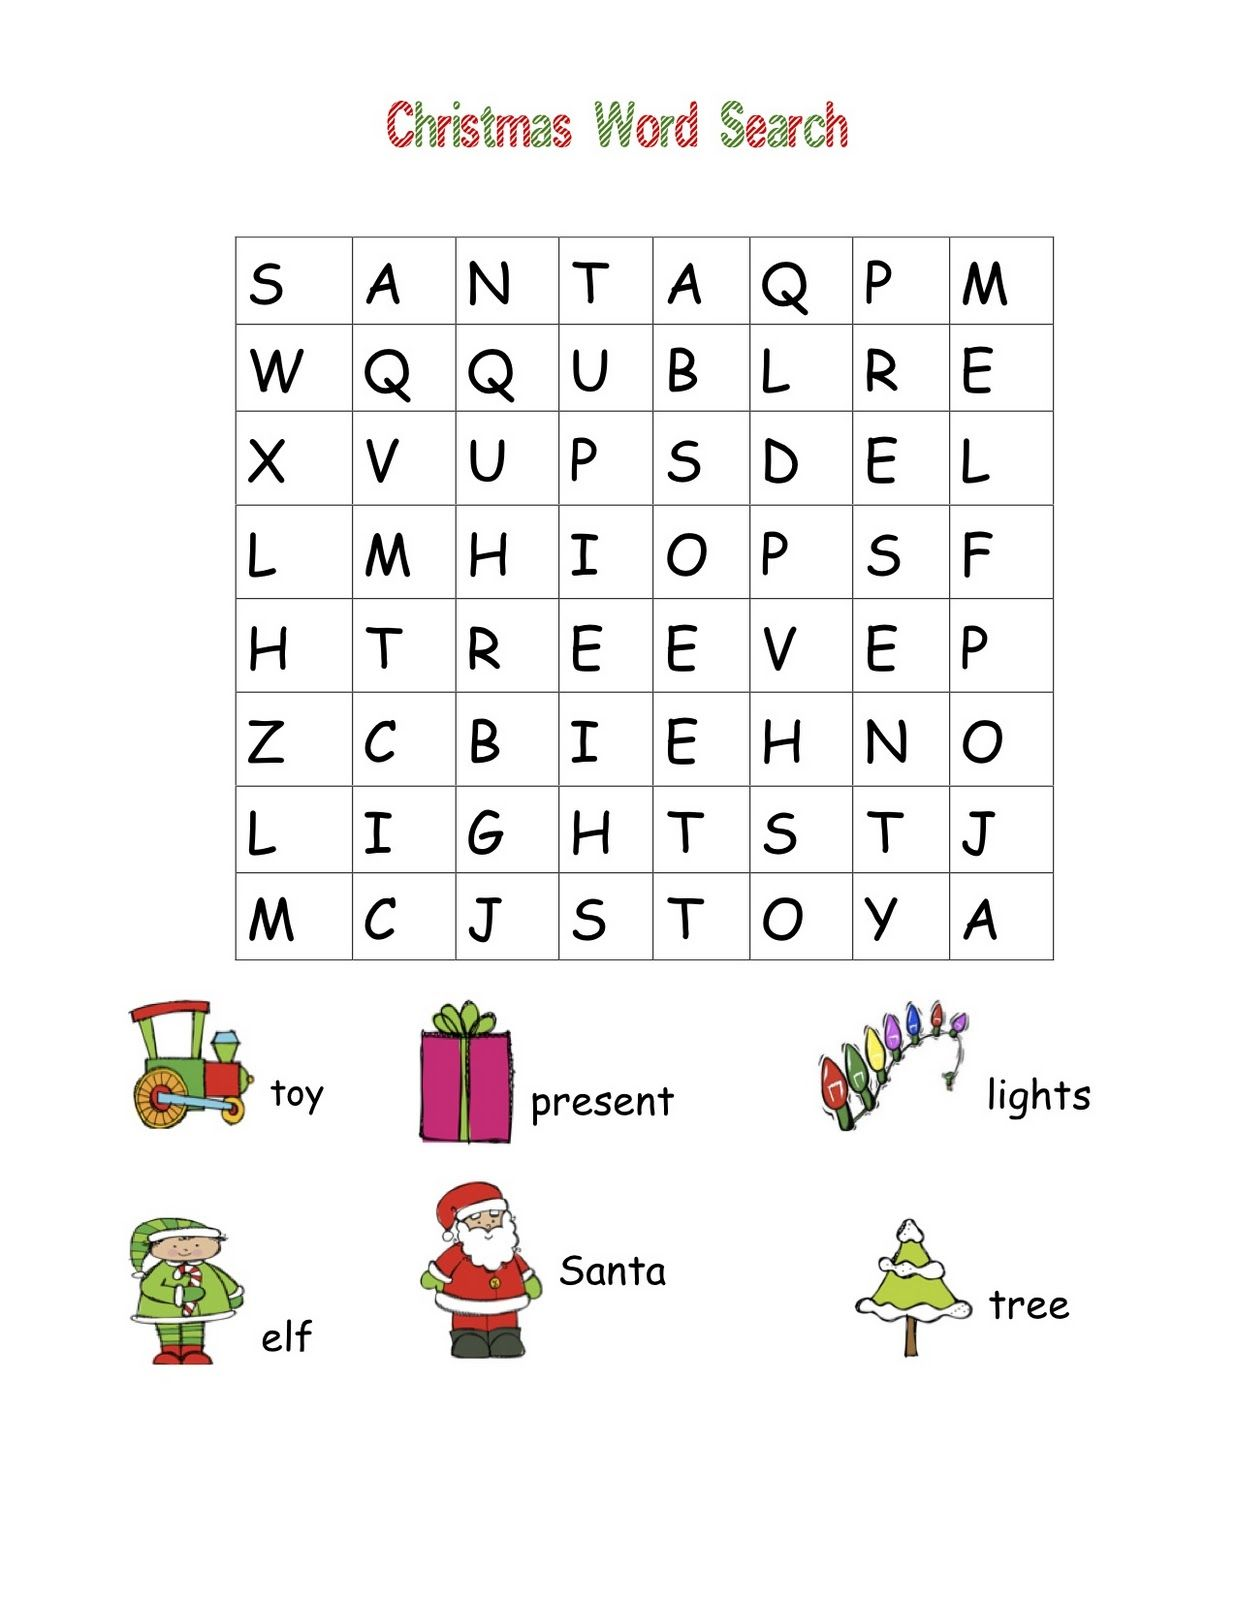 easy for kids word search christmas - Christmas Words That Start With Z